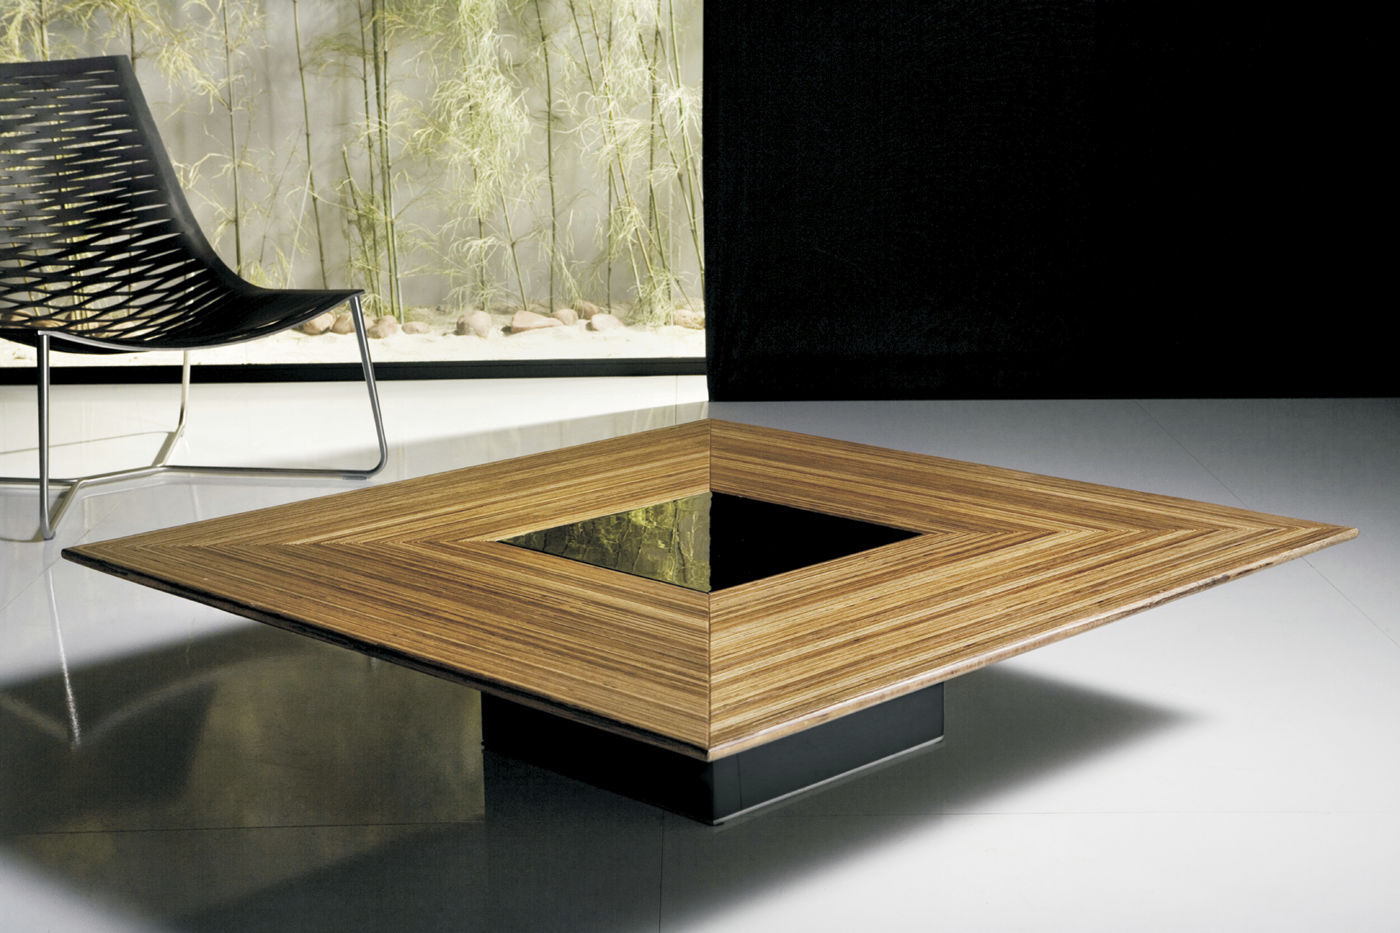 table basse bois contemporaine design en image. Black Bedroom Furniture Sets. Home Design Ideas